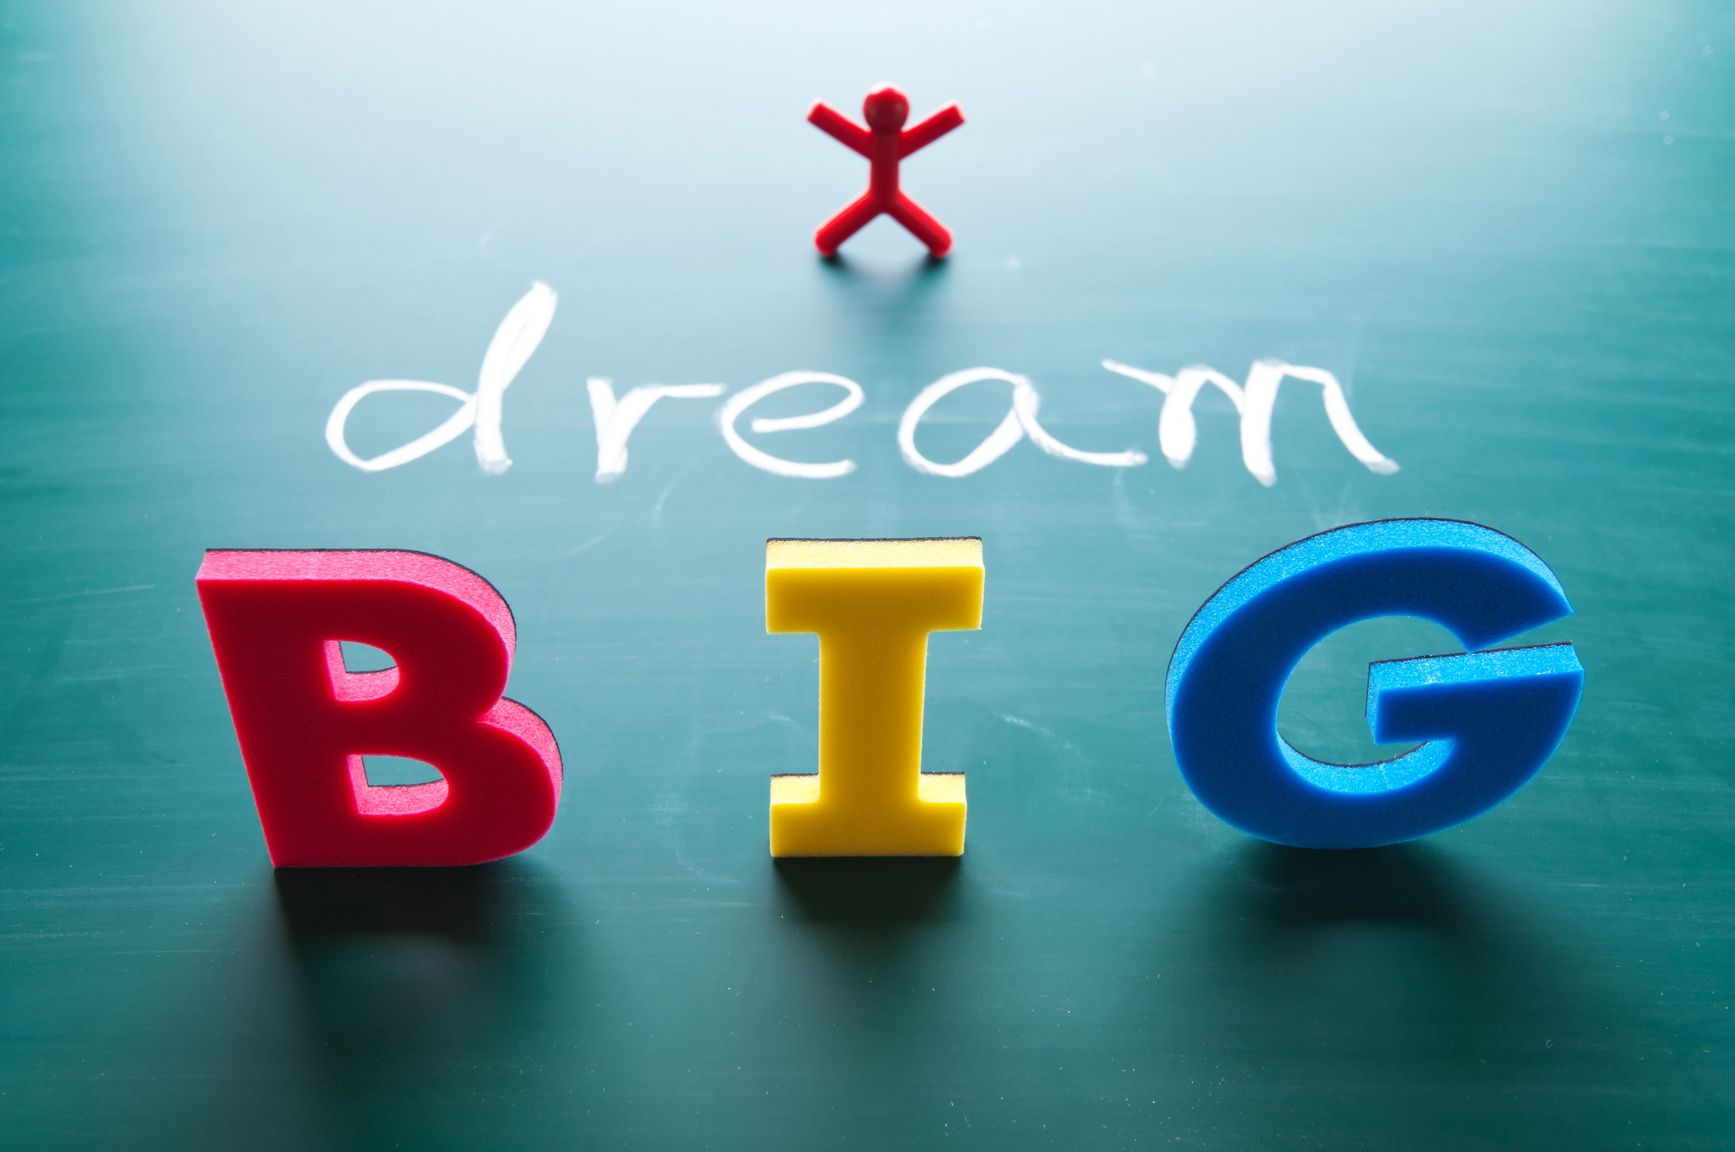 don t just dream dare to dream big michele knight